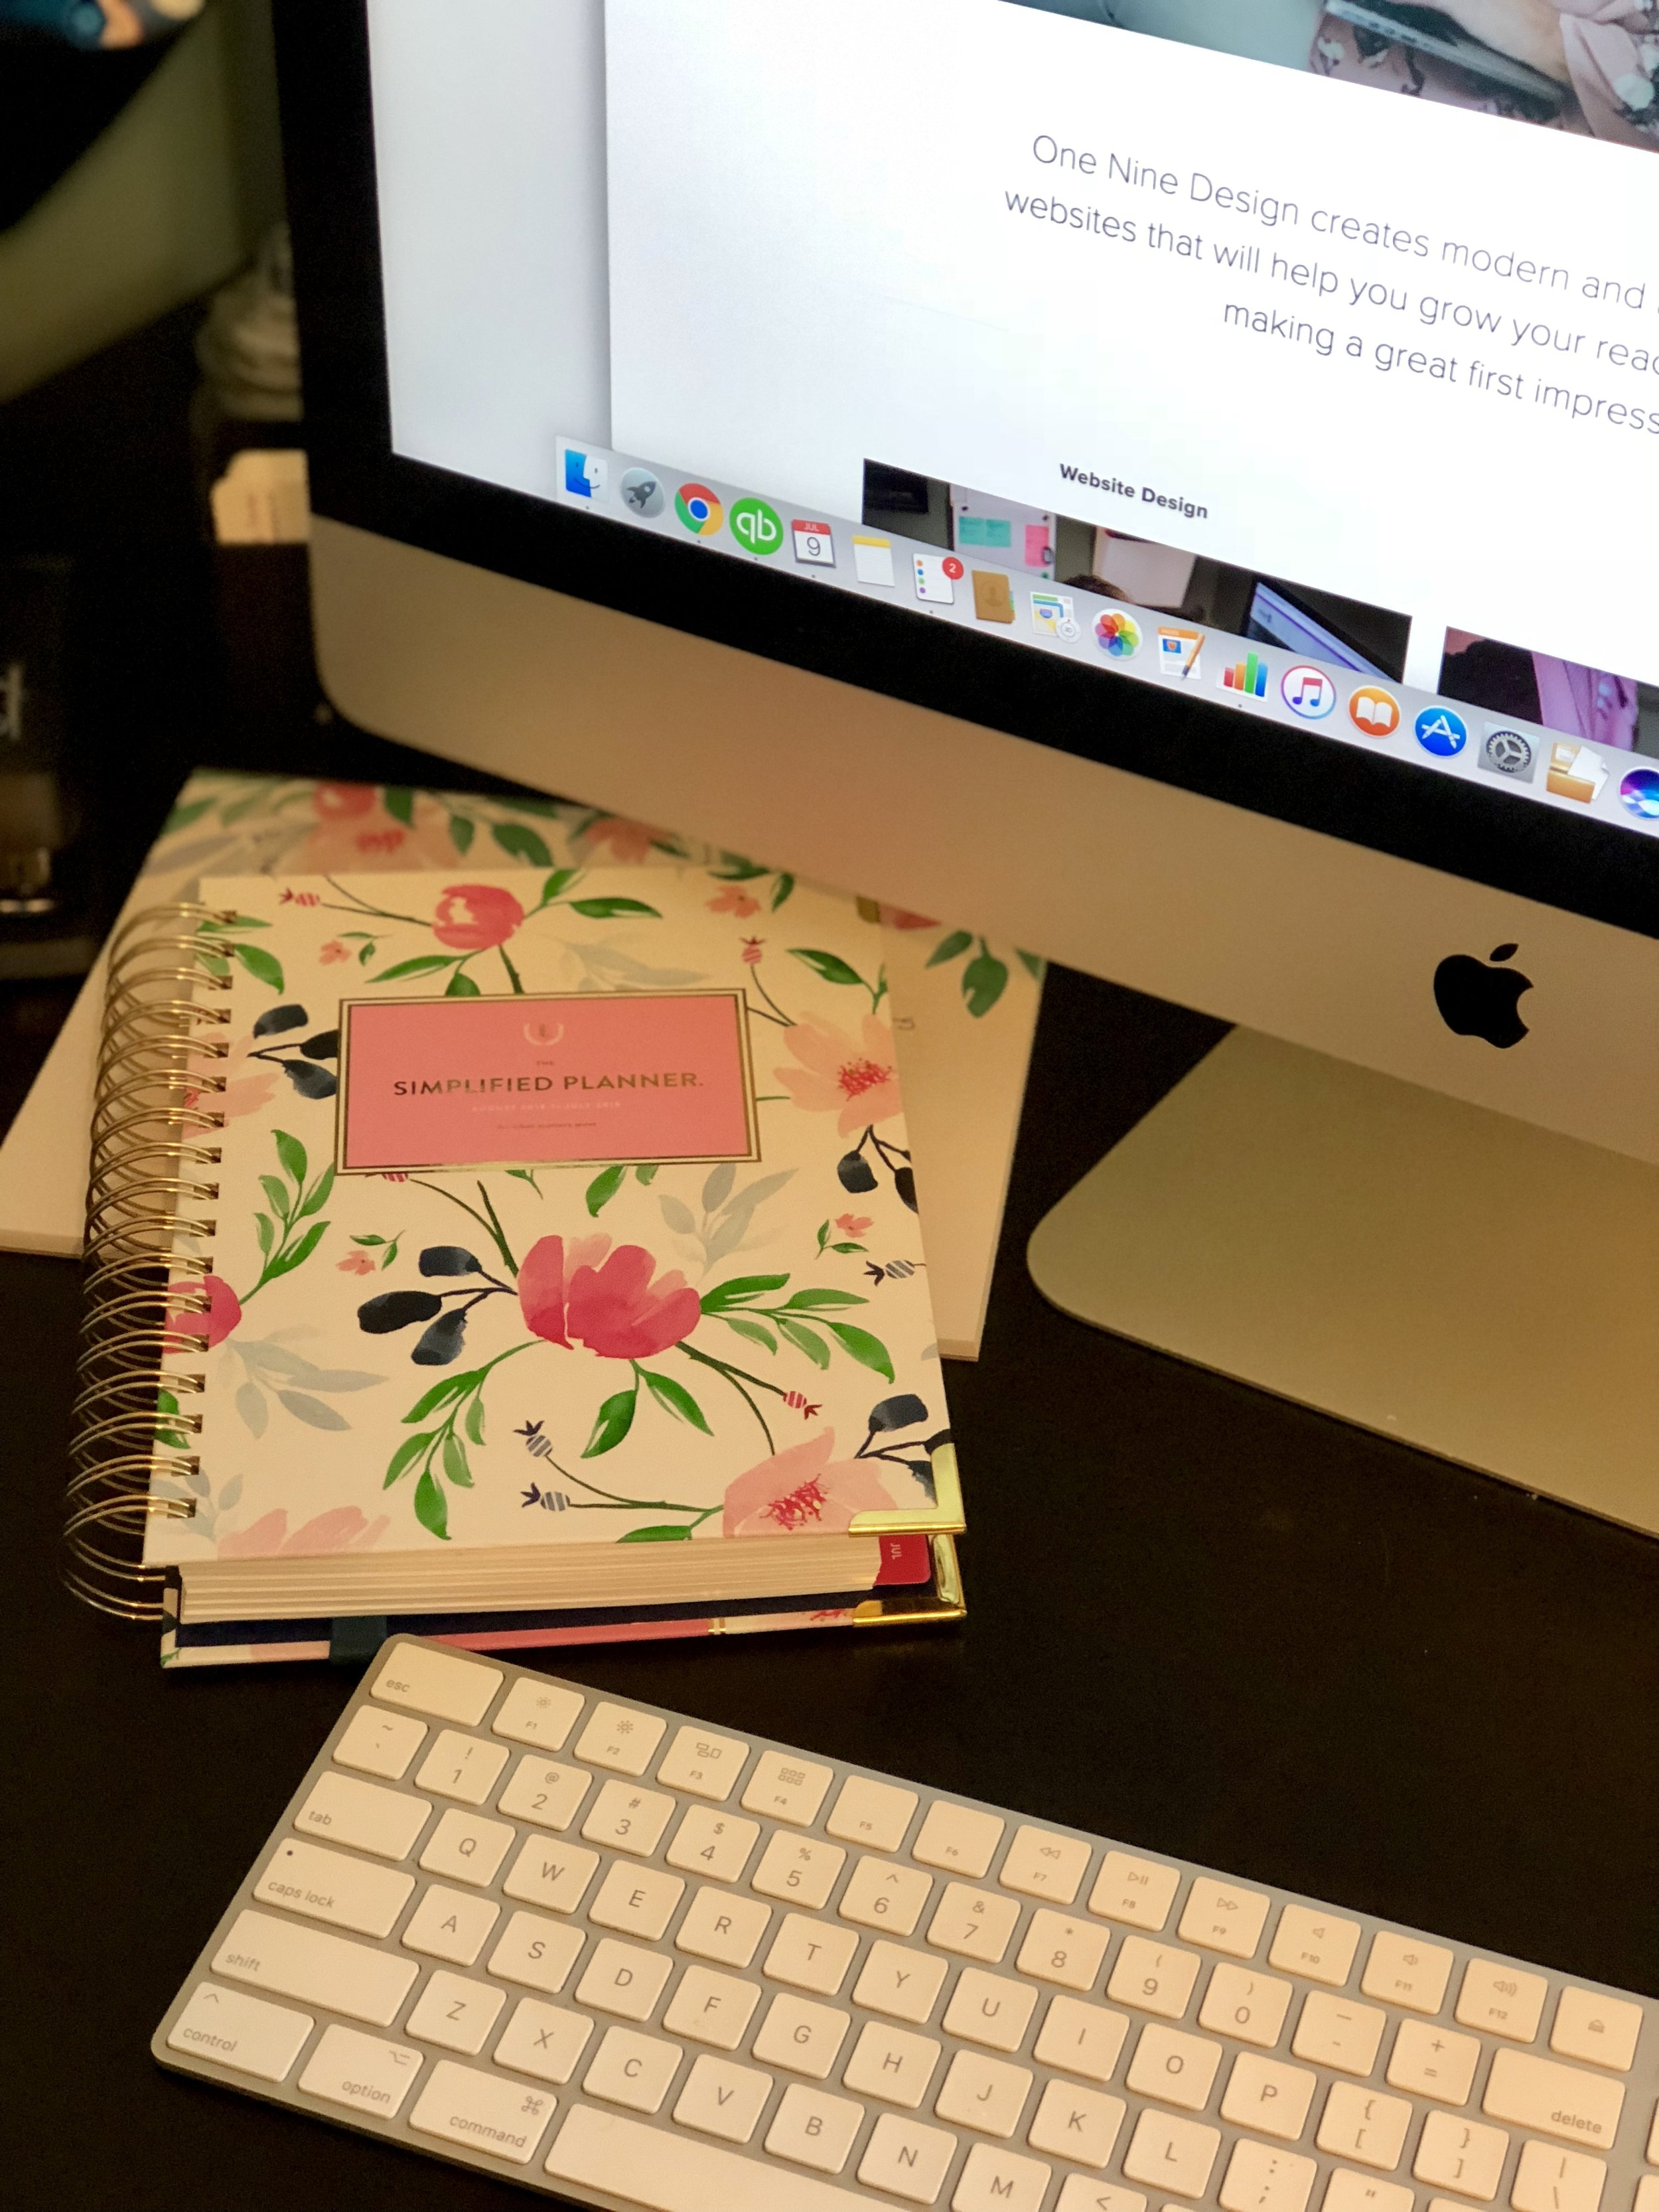 Simplified planner by emily ley.jpg